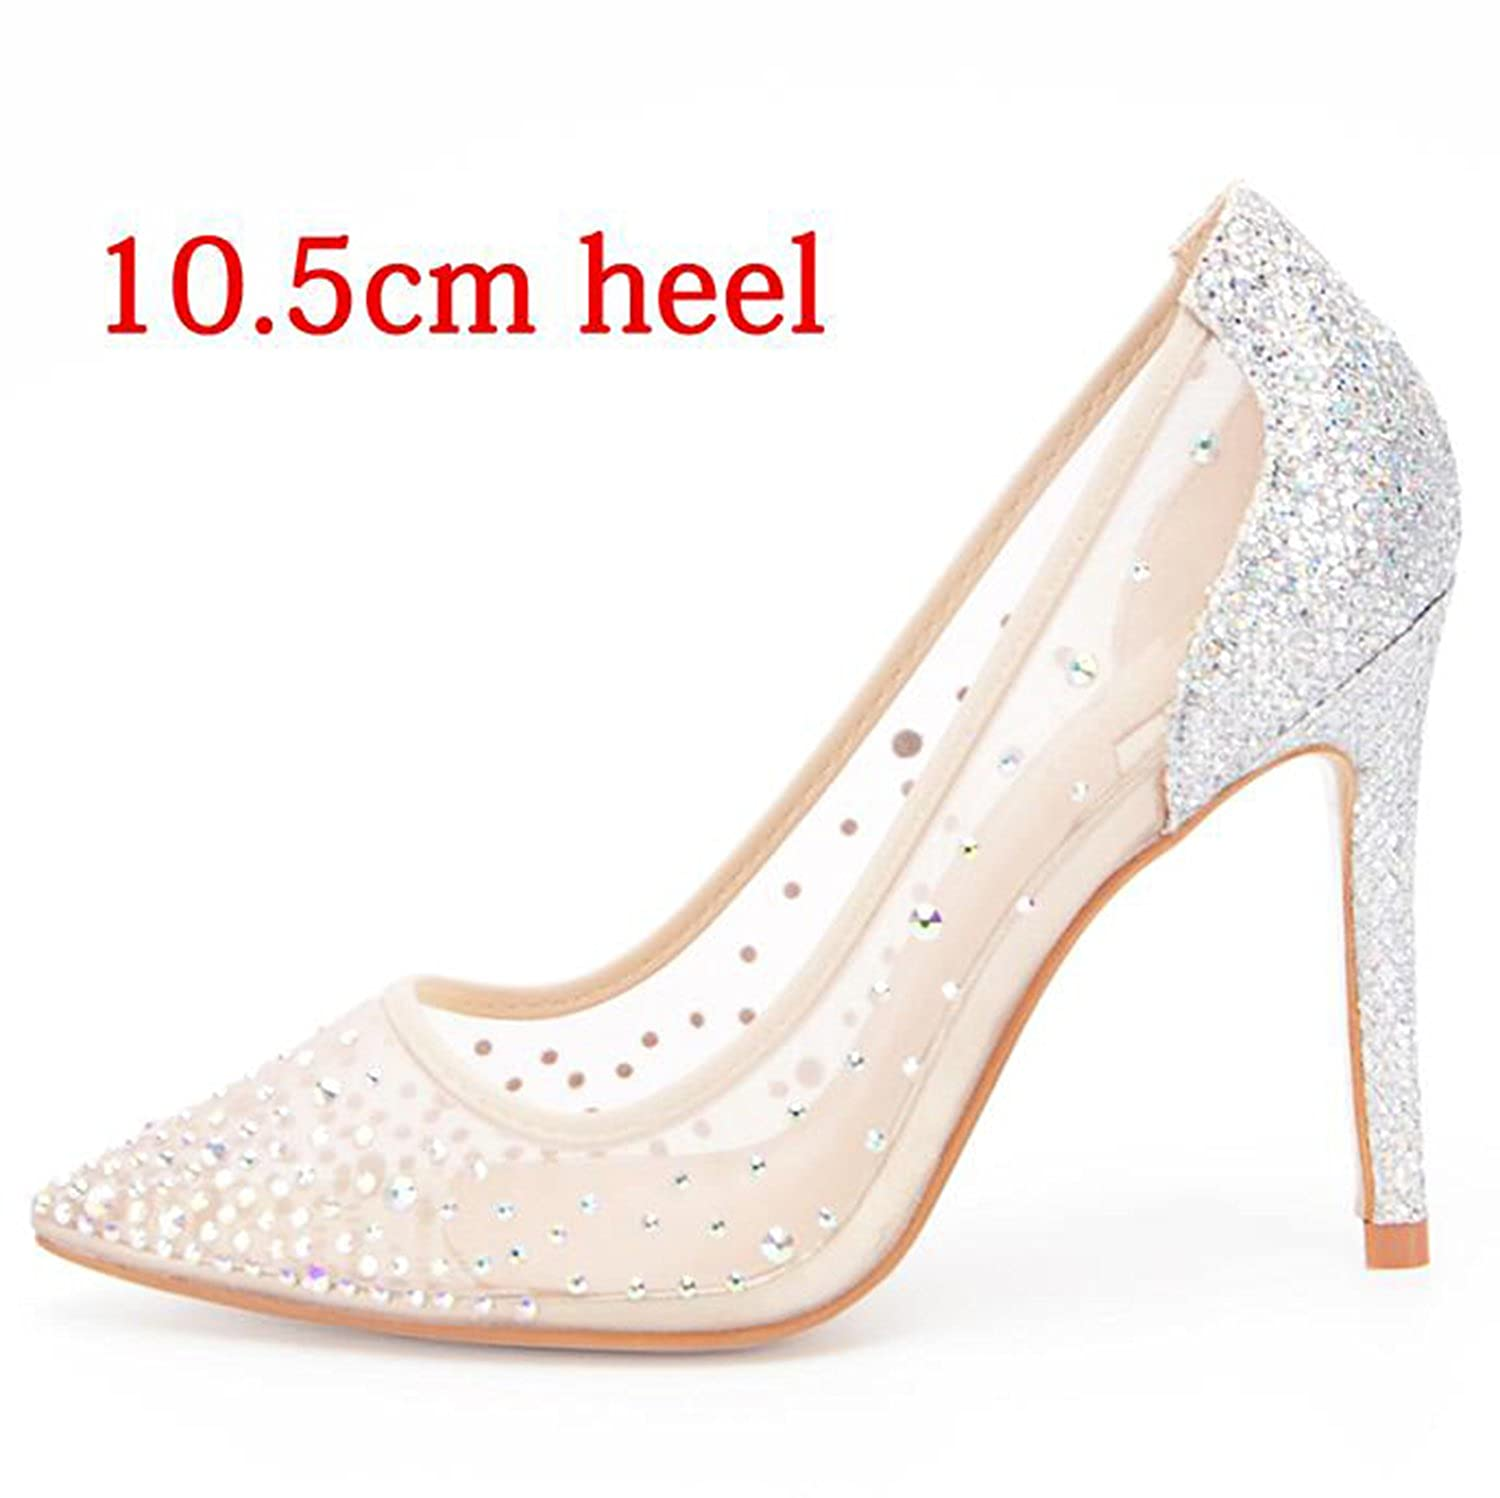 newest 84261 770d0 Gouache Crystal Women Pumps Glitter Shallow Mouth Mouth Mouth High Heels  Woman Party Wedding Shoe B07D4B5TS4 5 B(M) US 10.5cm Heel af33ba